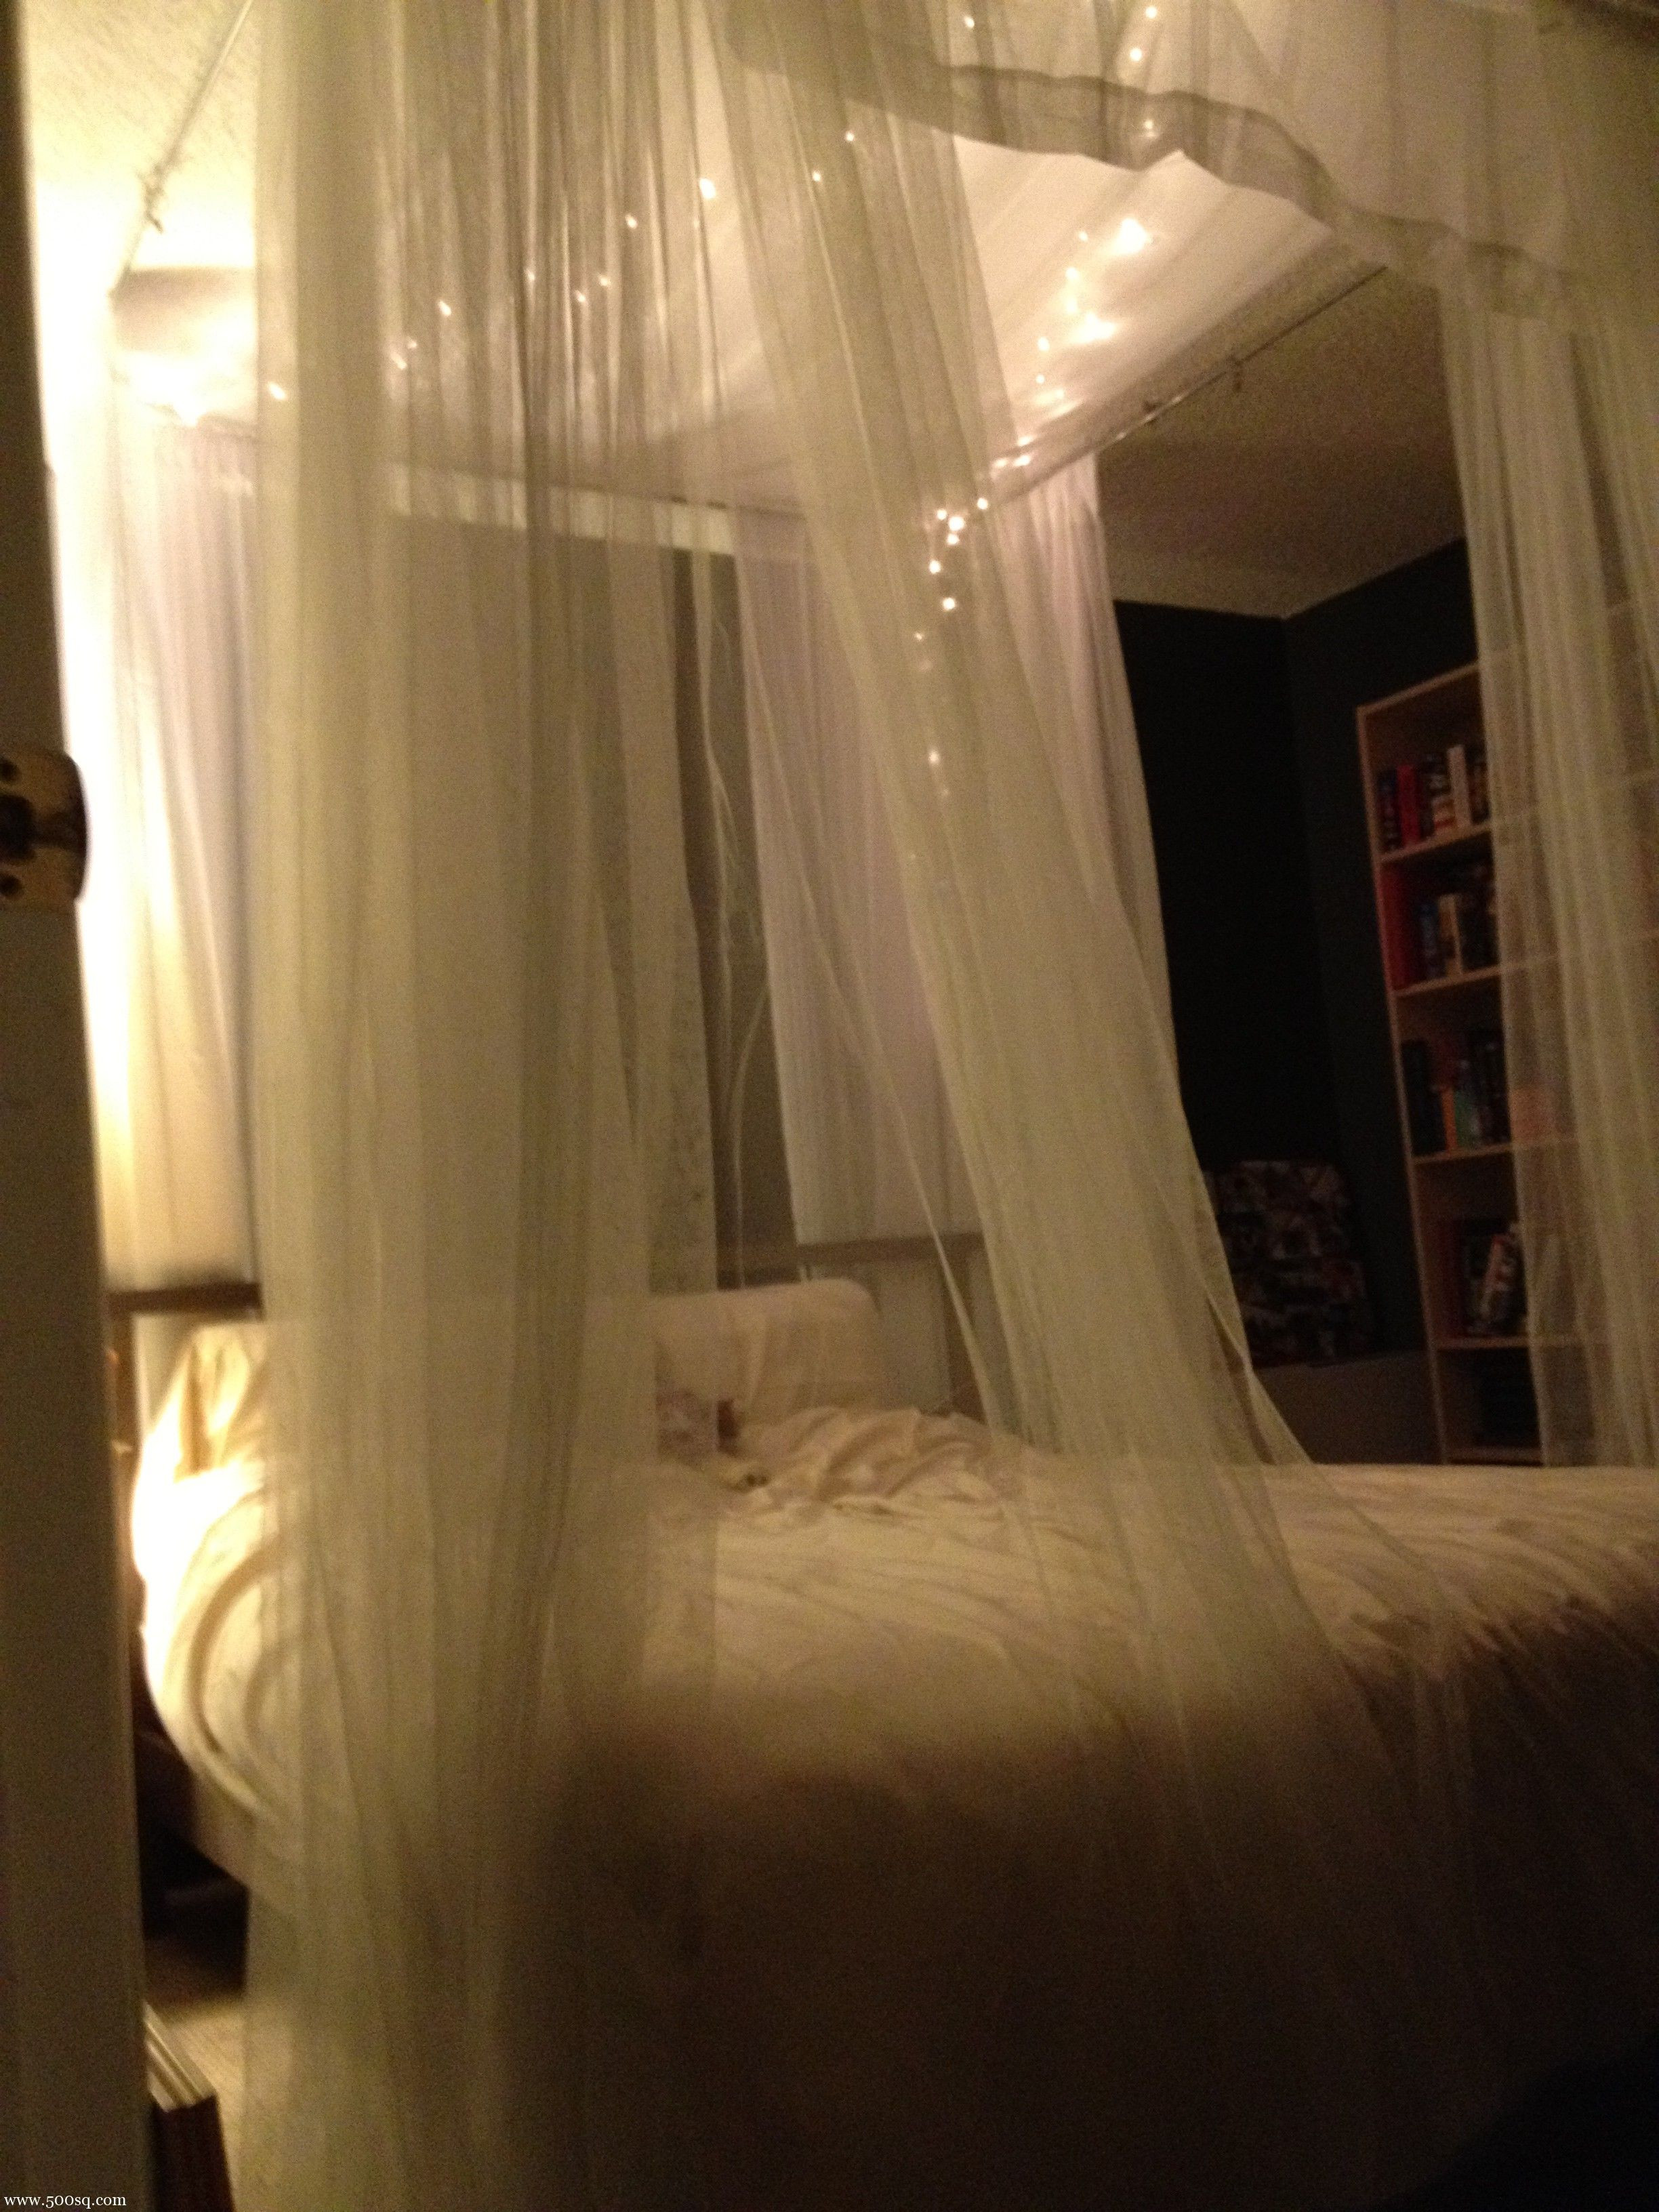 Best ideas about DIY Canopy Bed Curtains . Save or Pin Faux Canopy Bed on Pinterest Now.